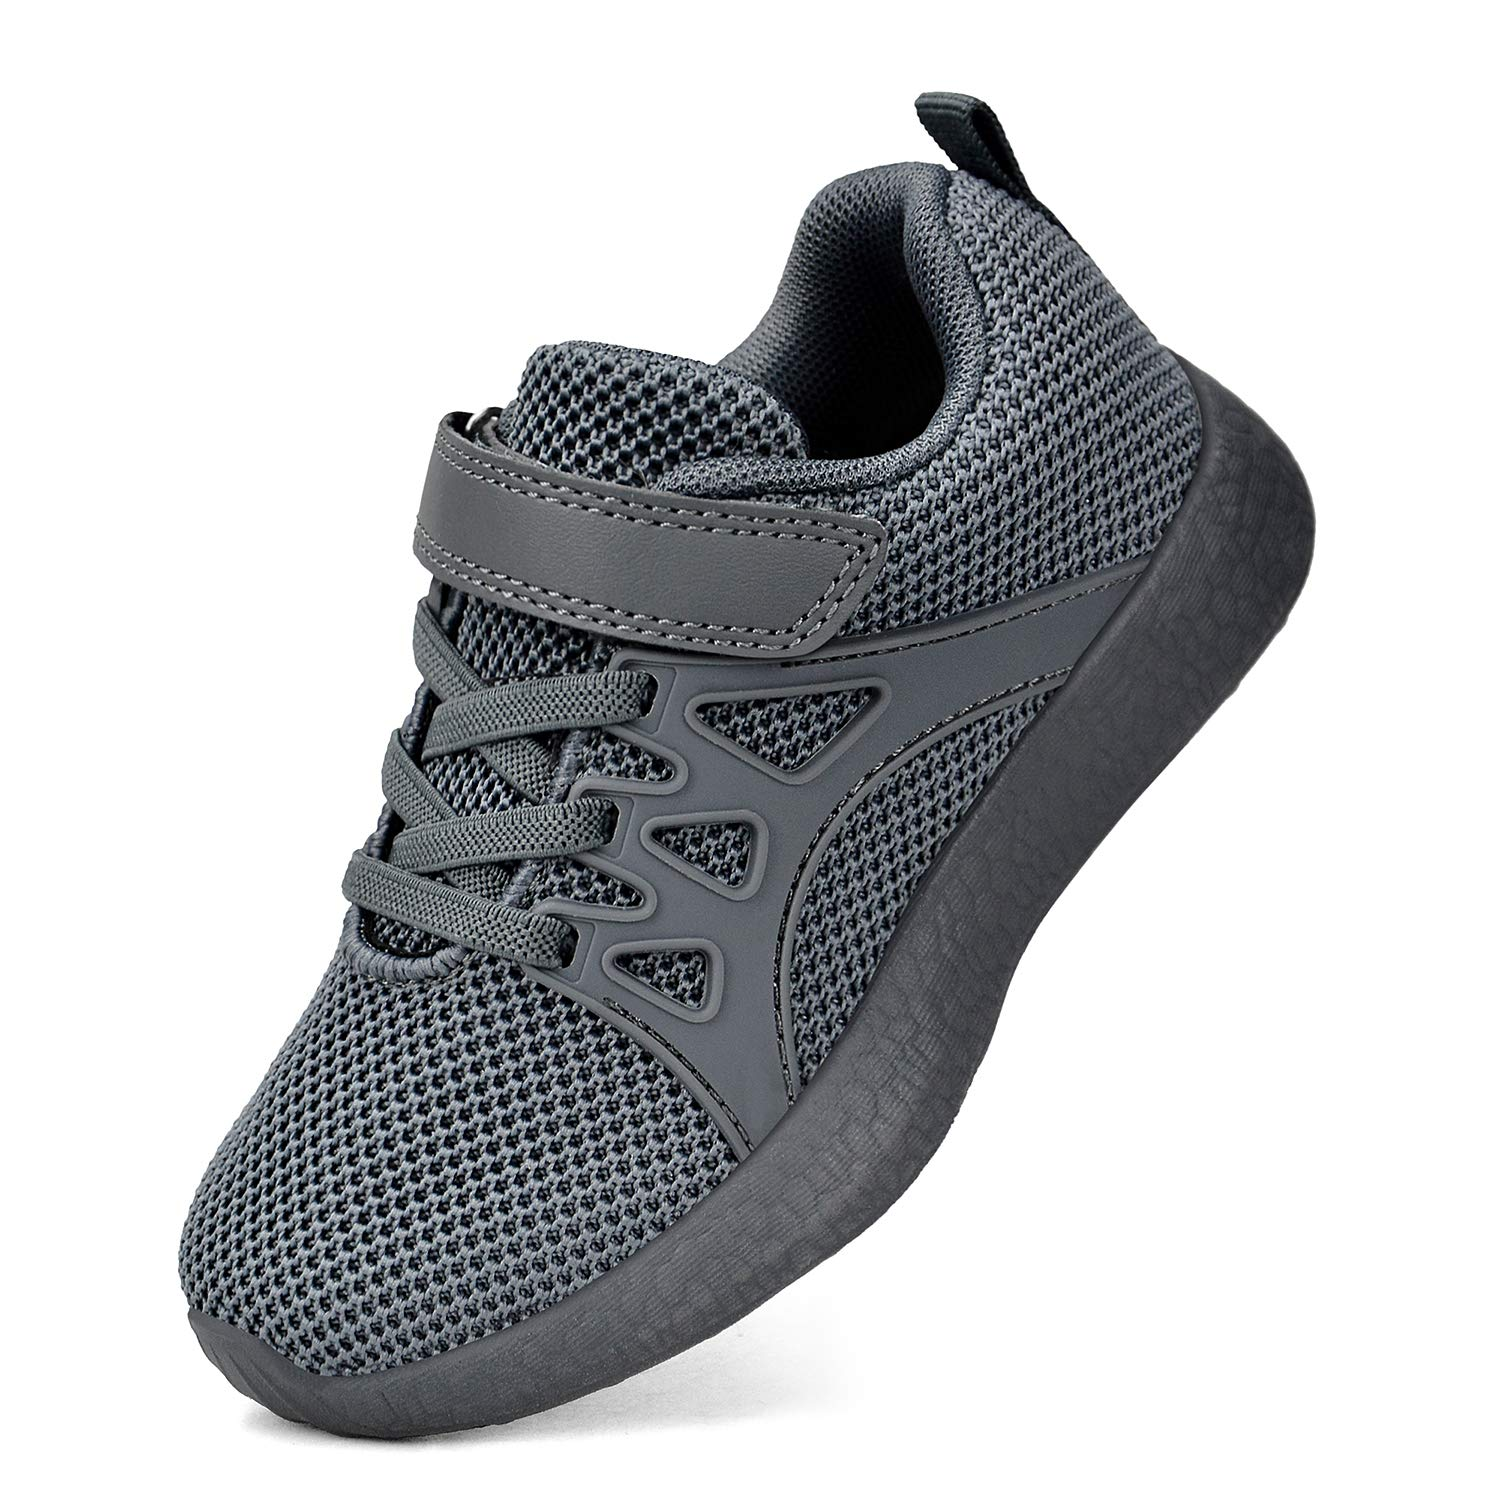 SouthBrothers Shoes for Kids Knitted Breathable Boys Sneakers Dark Gray Size 1.5 M US Little Kid